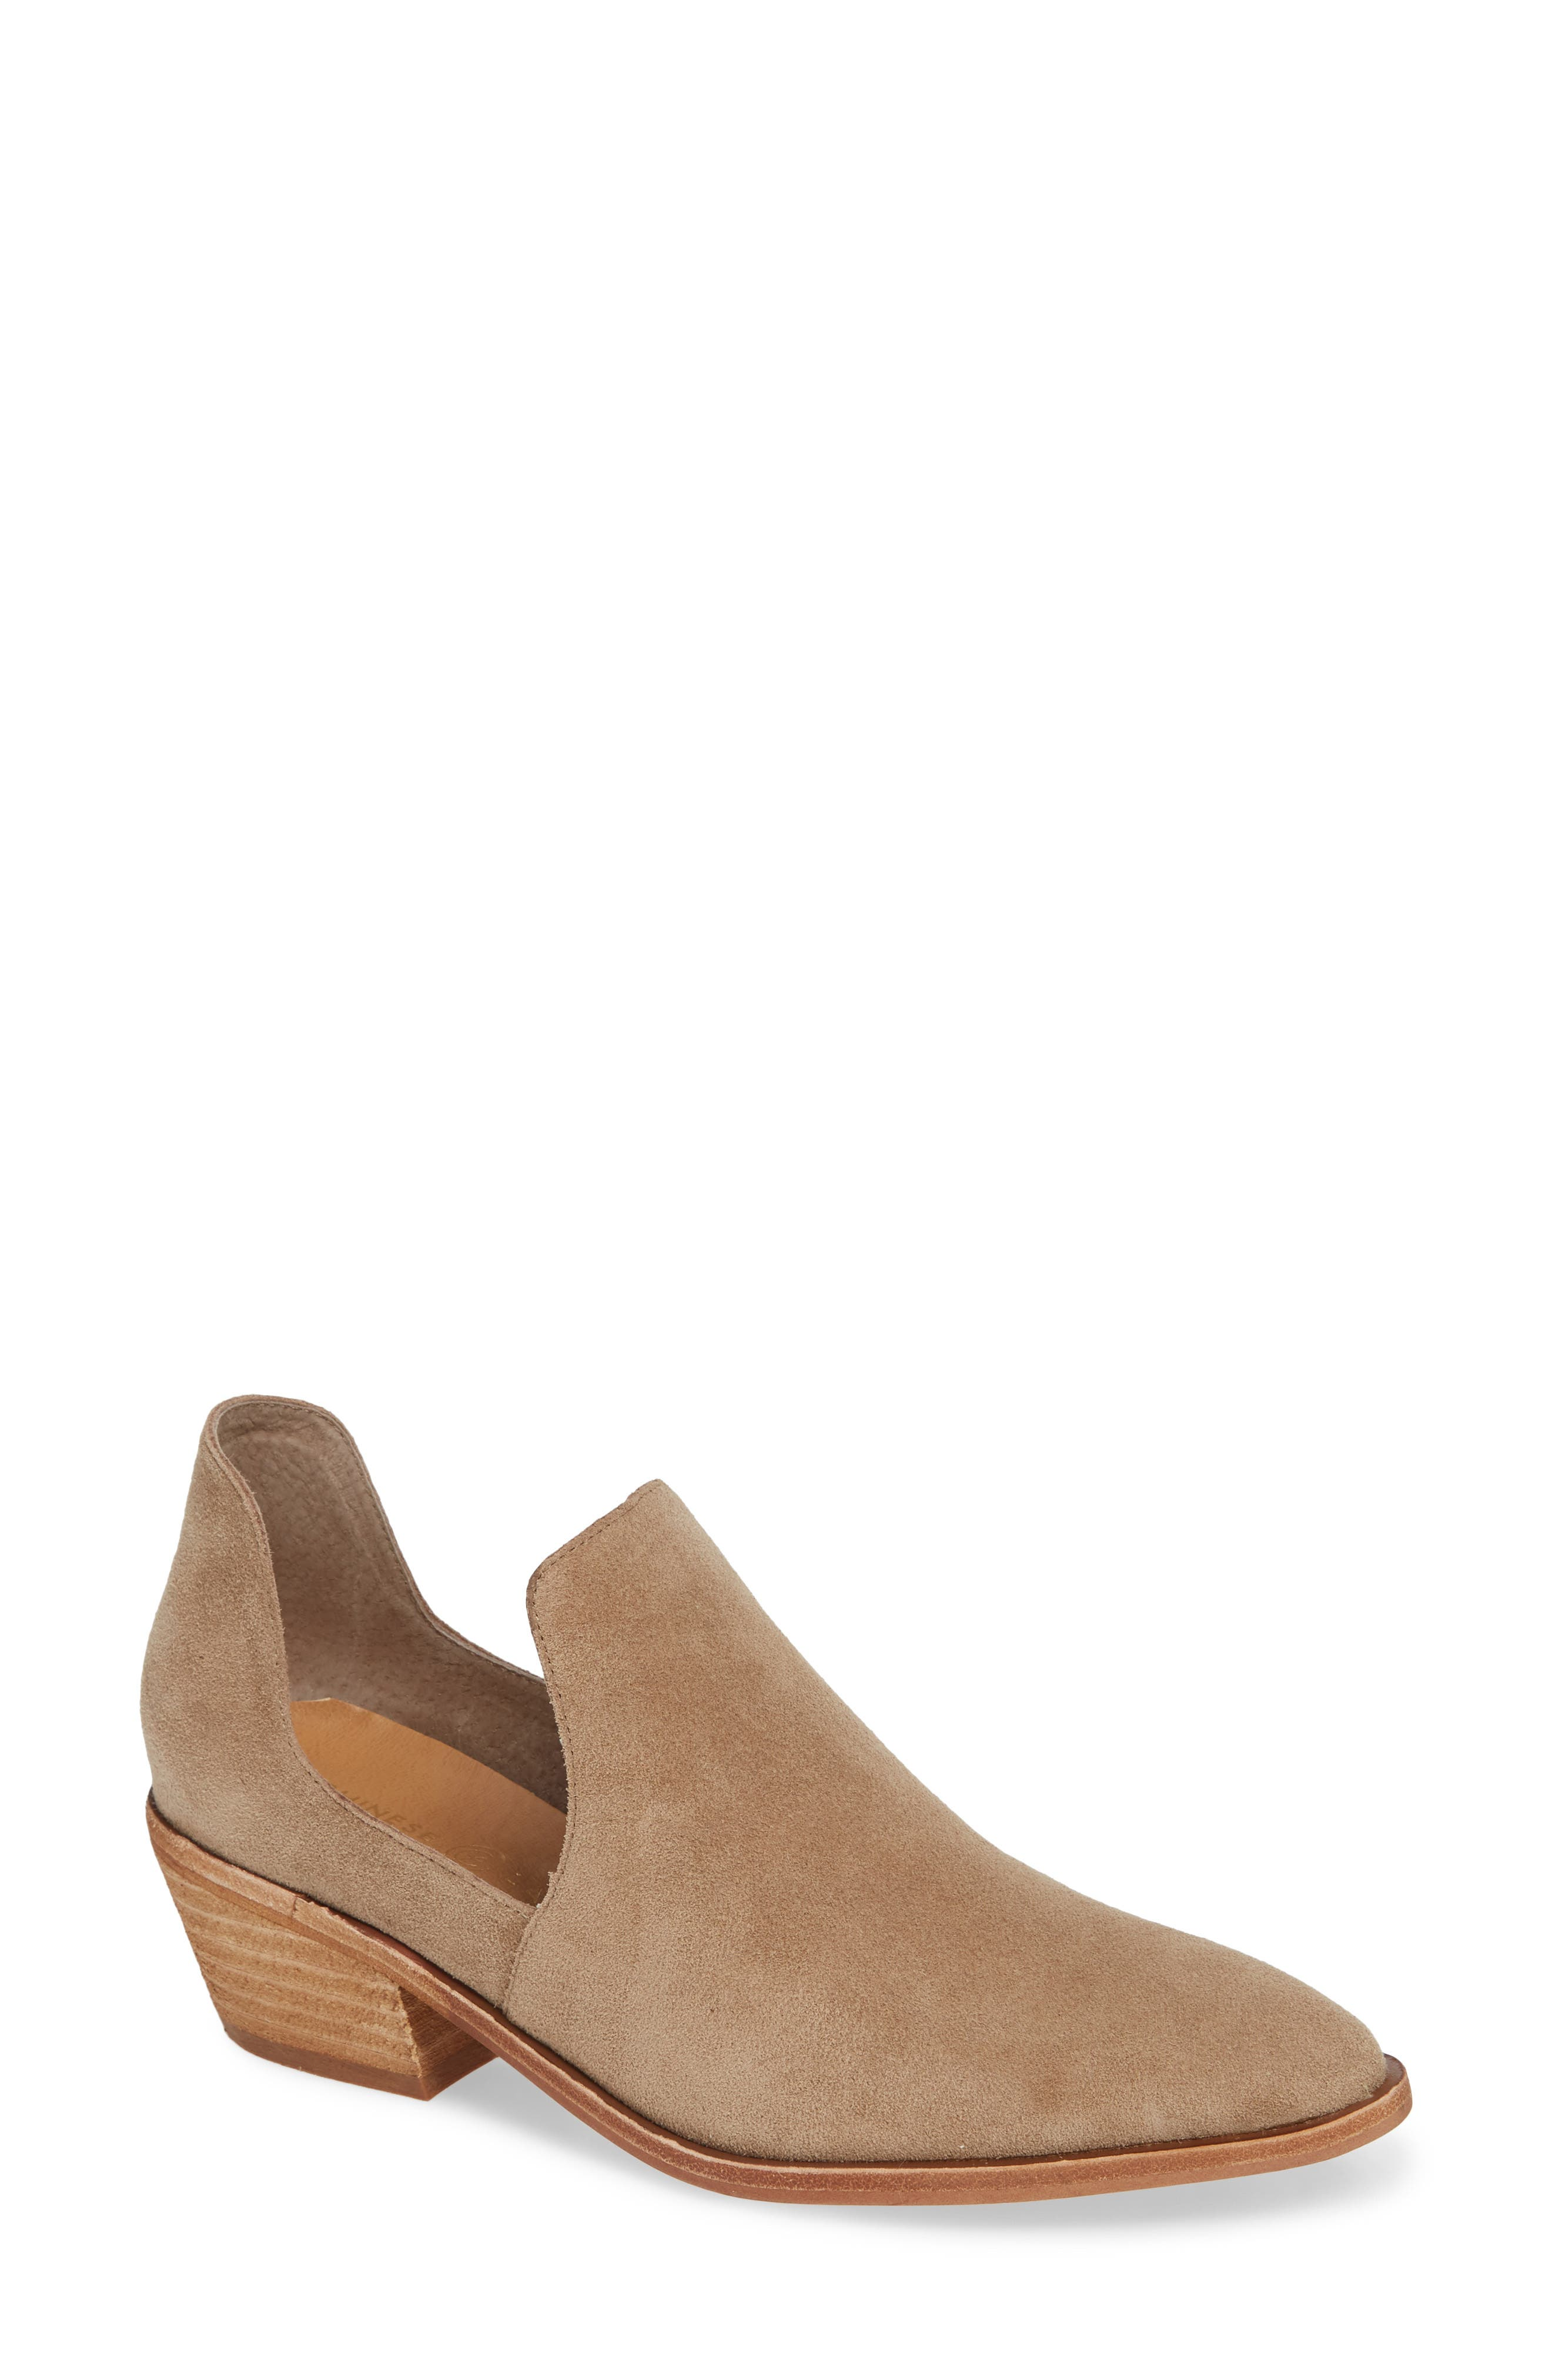 Chinese Laundry Focus Open Sided Bootie- Beige